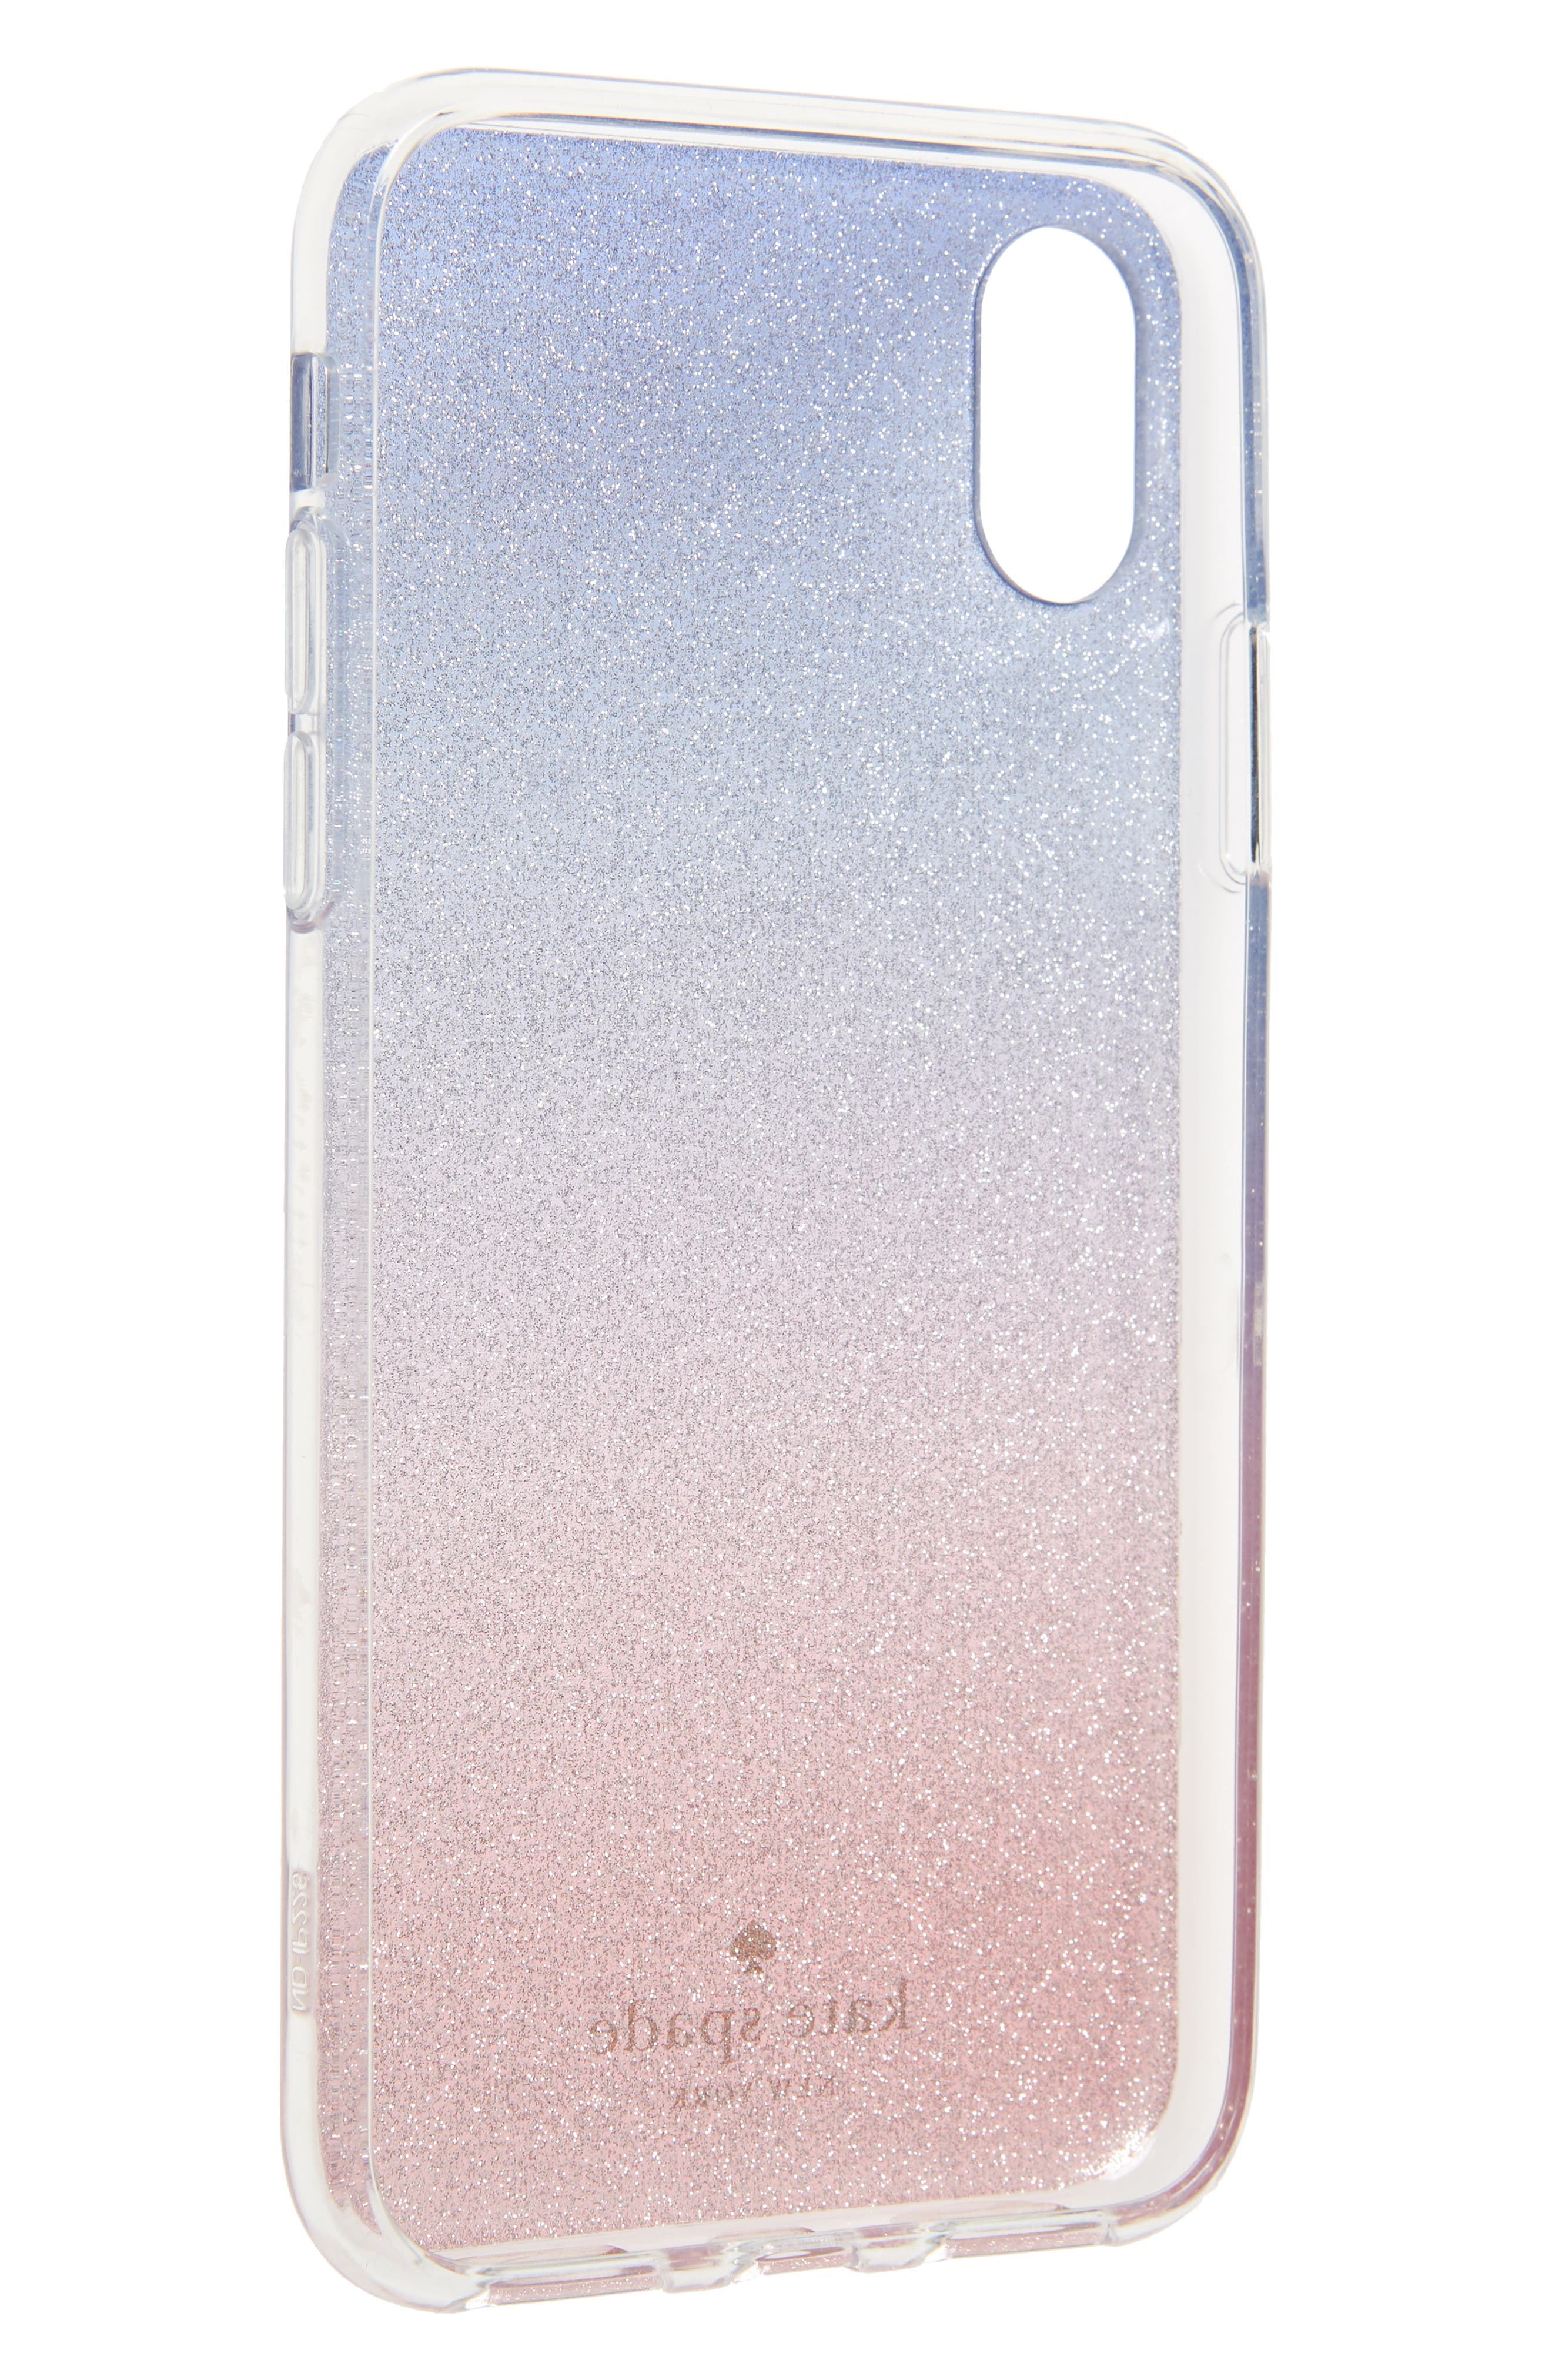 KATE SPADE NEW YORK,                             ombré sunset glitter iPhone X/Xs case,                             Alternate thumbnail 2, color,                             673